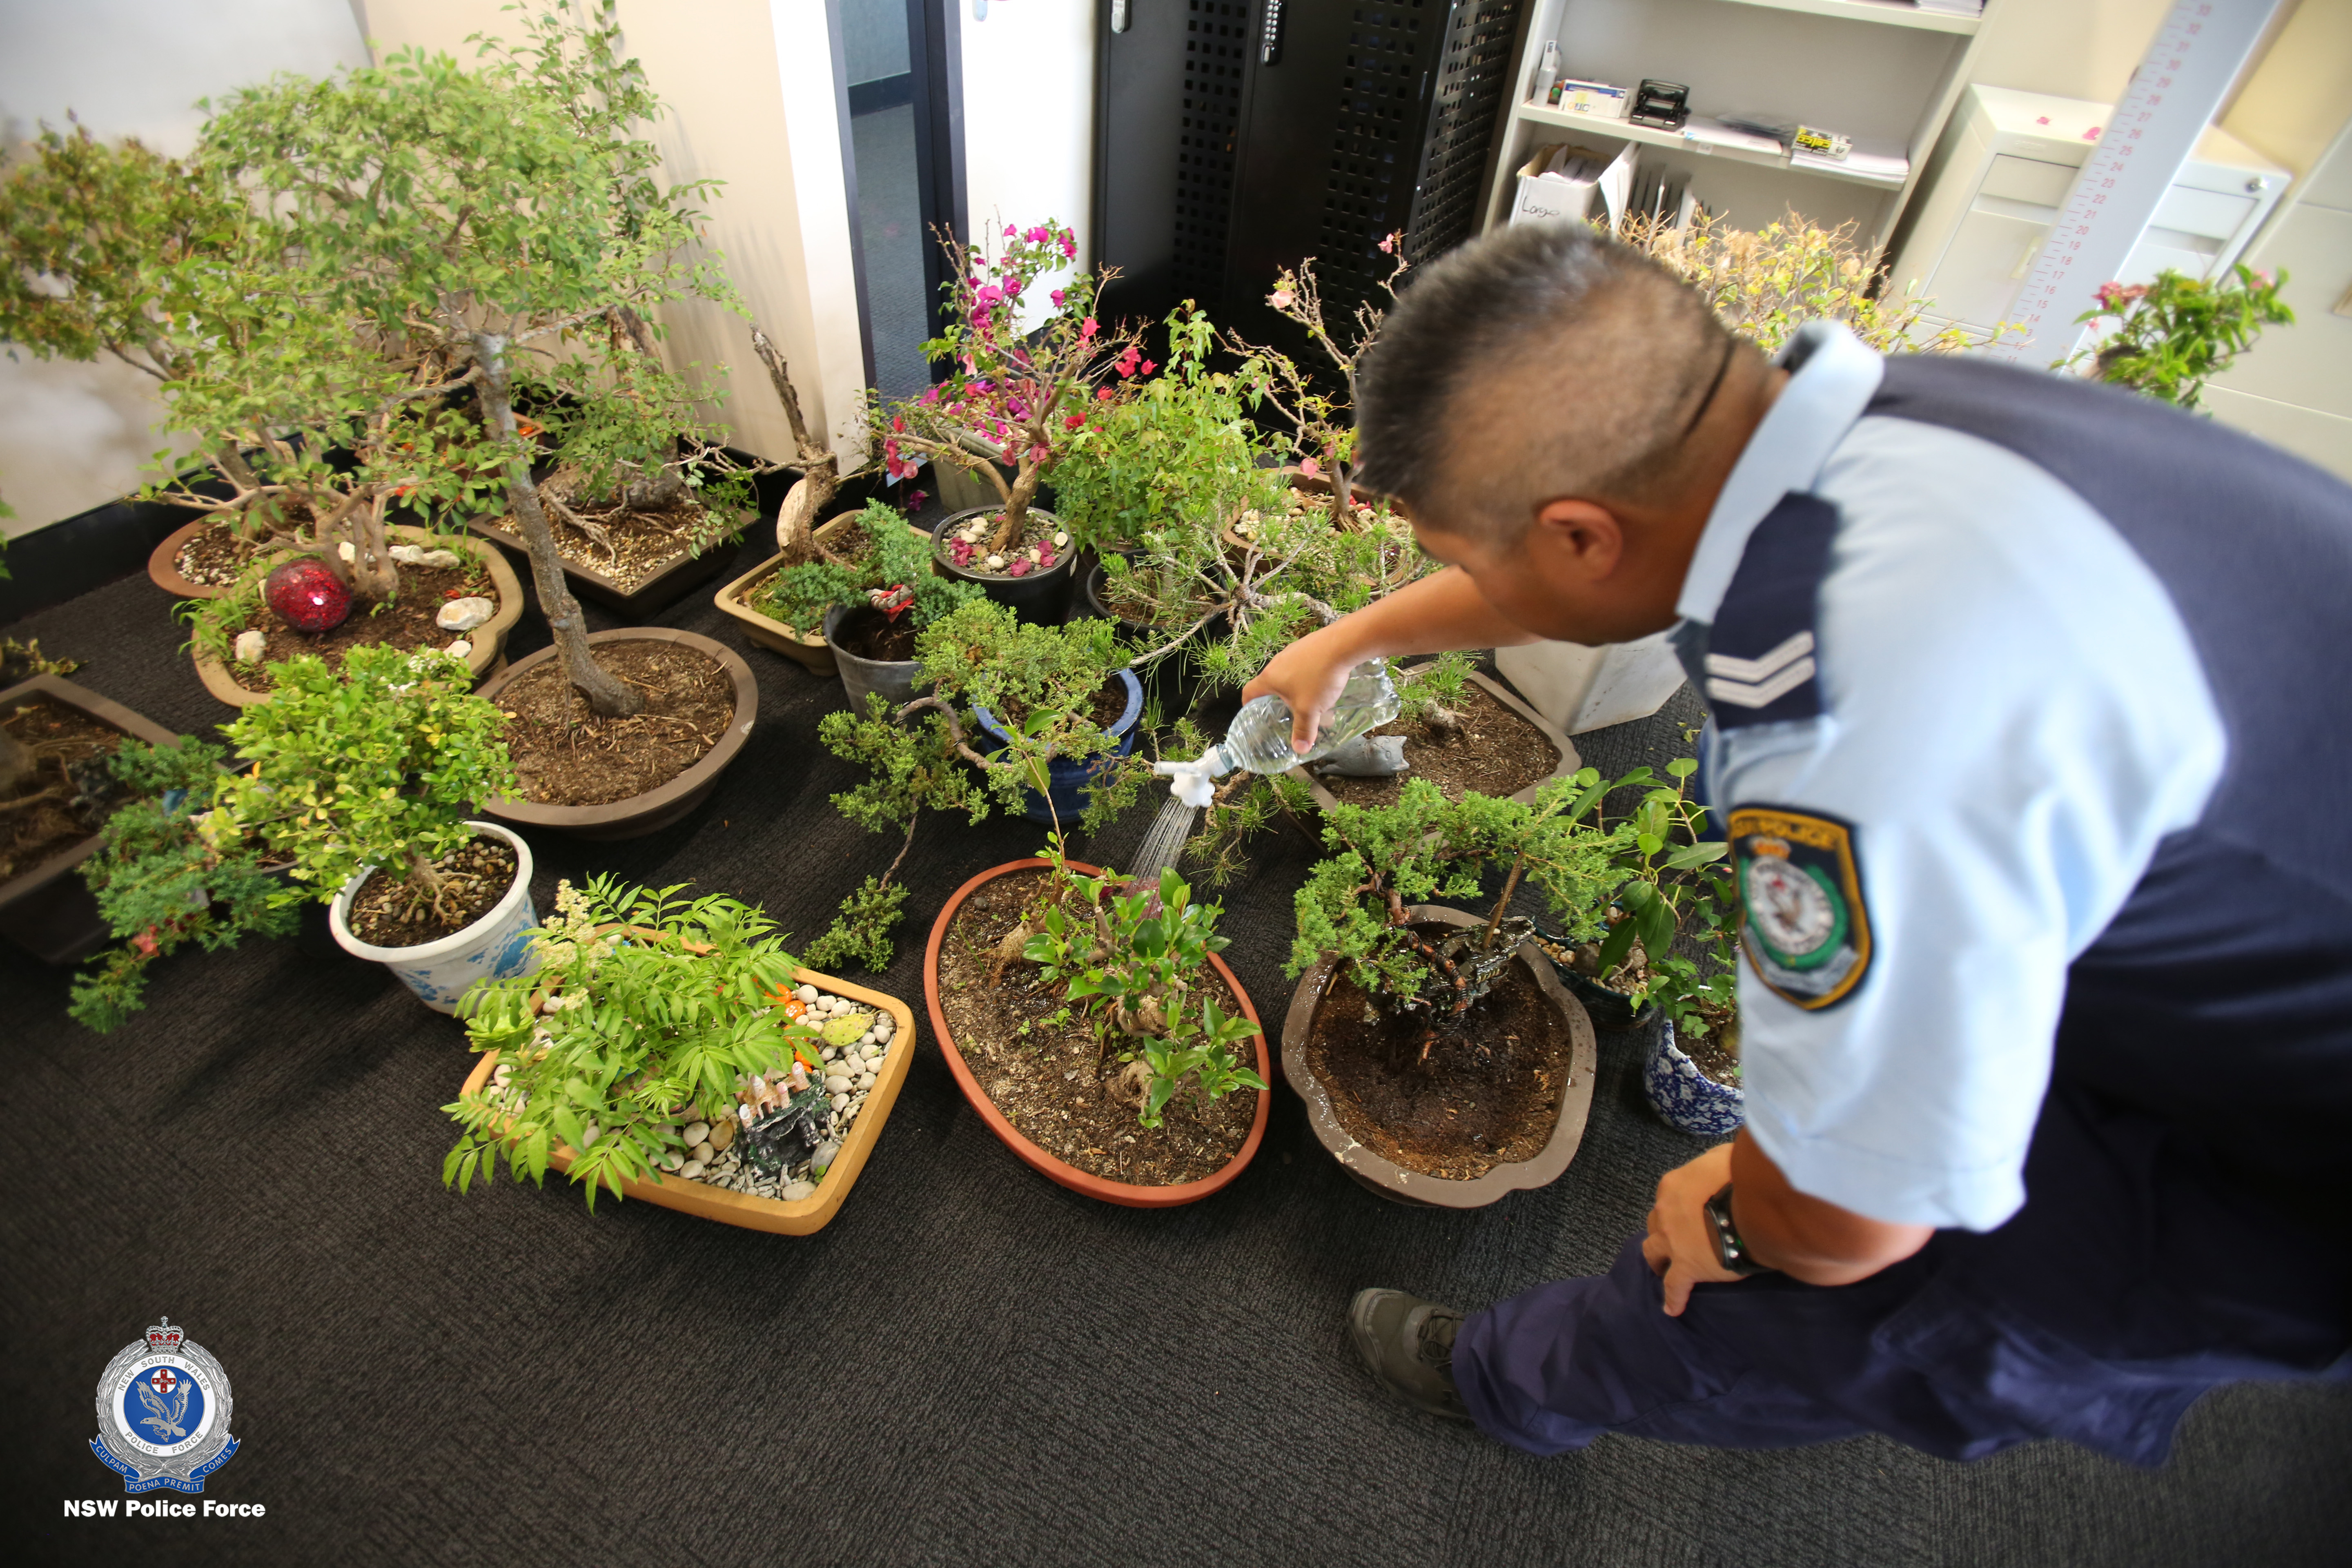 PHOTOS | $30,000 of stolen bonsai trees seized by police